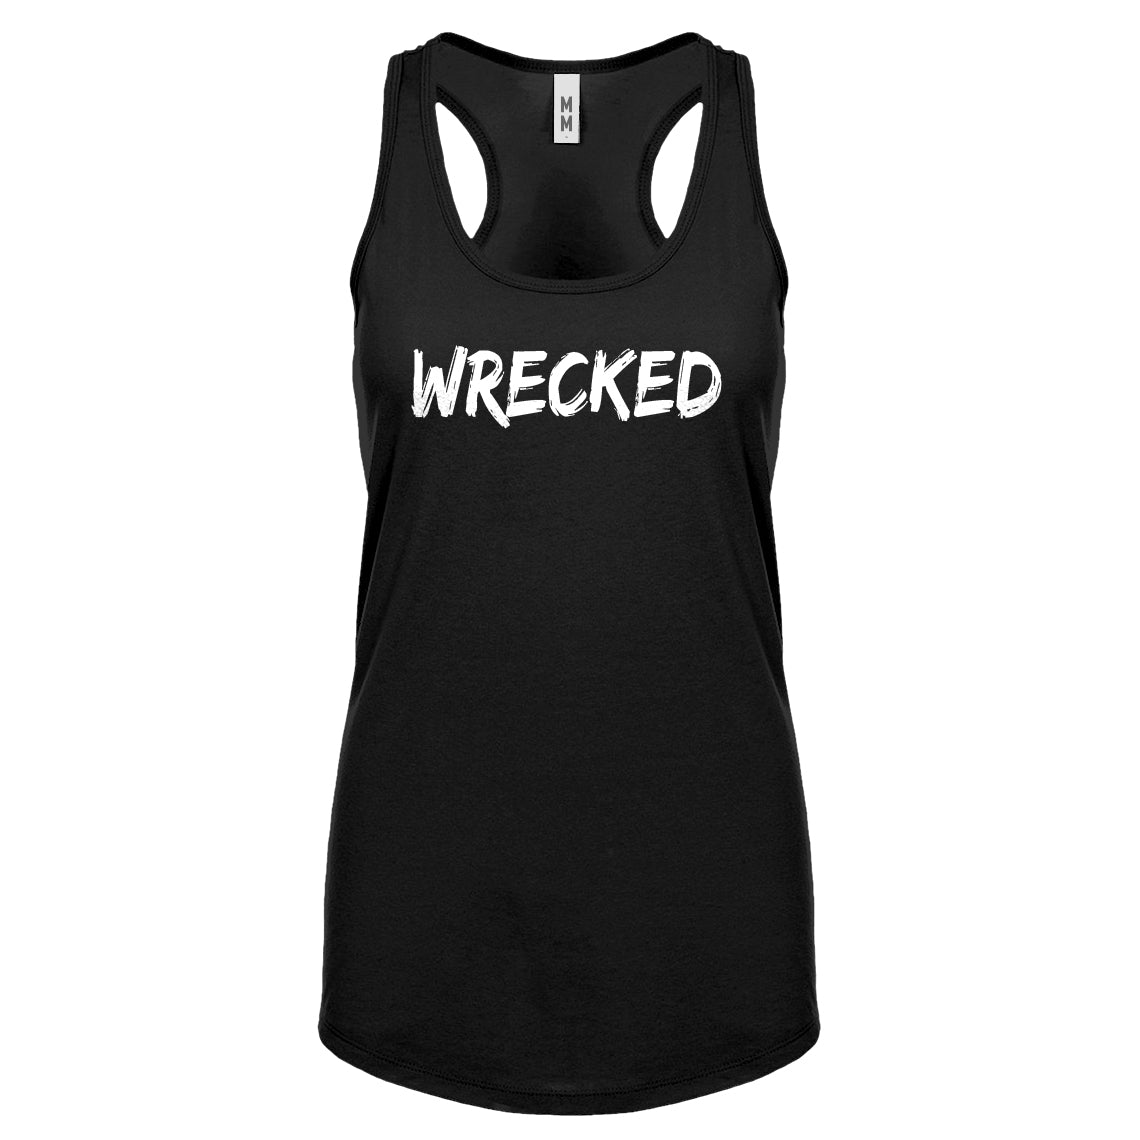 Racerback Wrecked Womens Tank Top